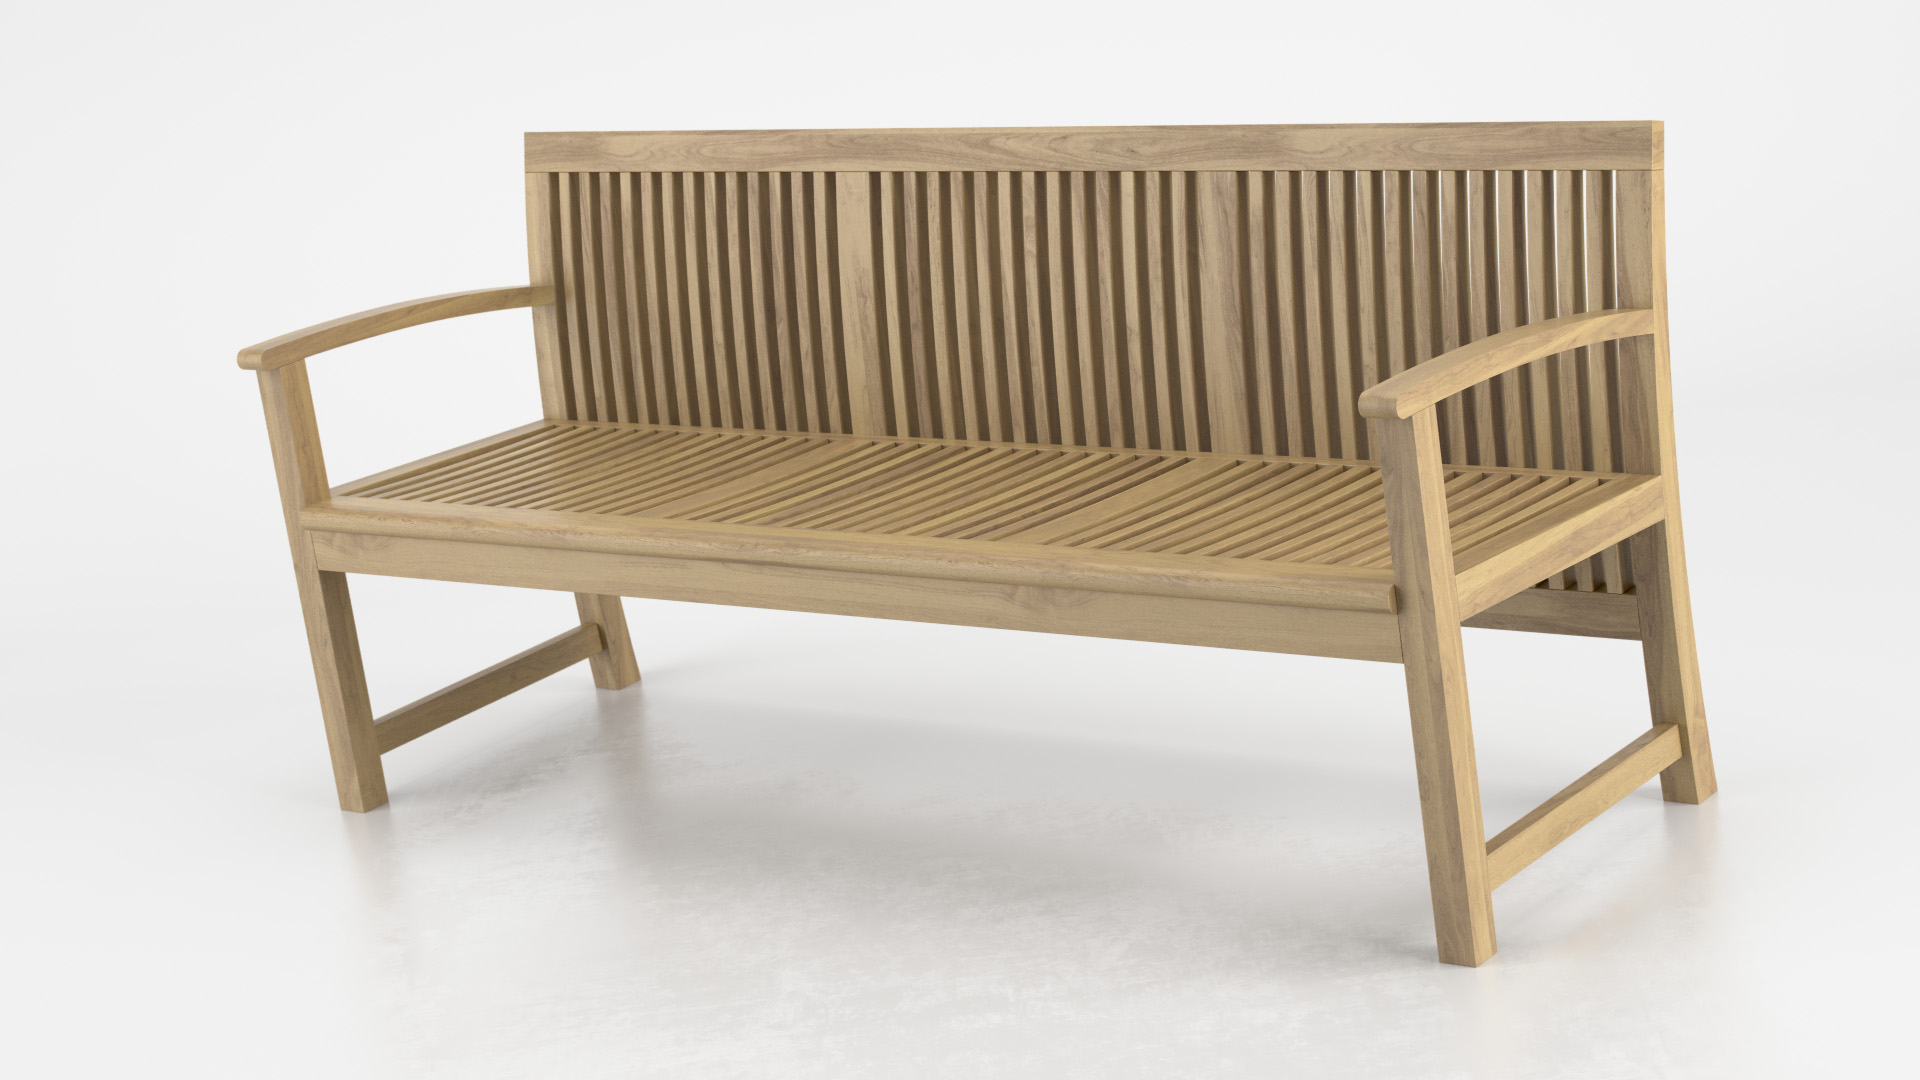 Tribu_Praslin_Bench_WhiteSet_01_0003